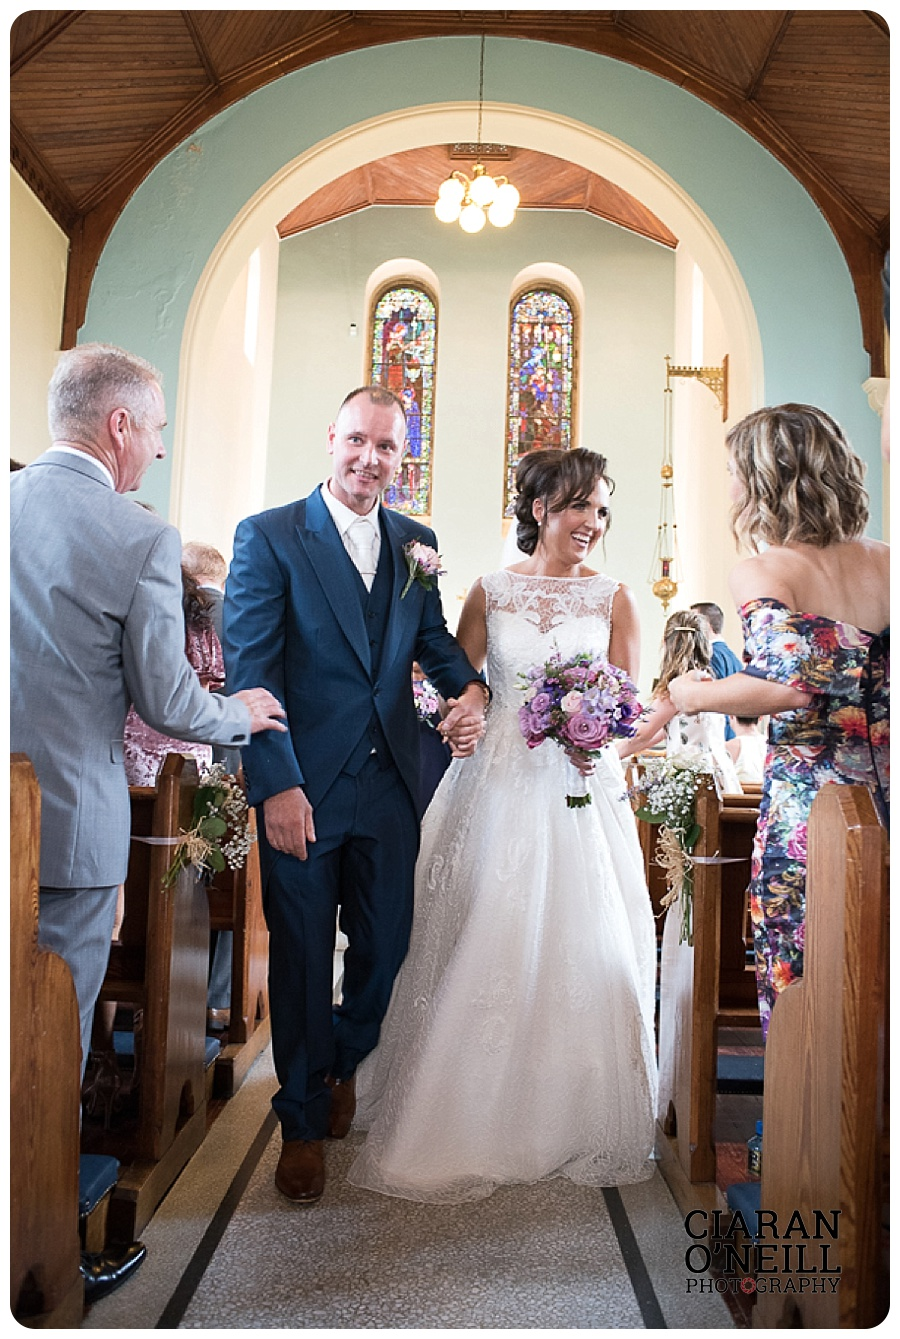 Wedding Day Info Bride Johanne Cunningham Groom Stephen Orr Date 7th July 2017 Ceremony Our Lady Of Lourdes Grange